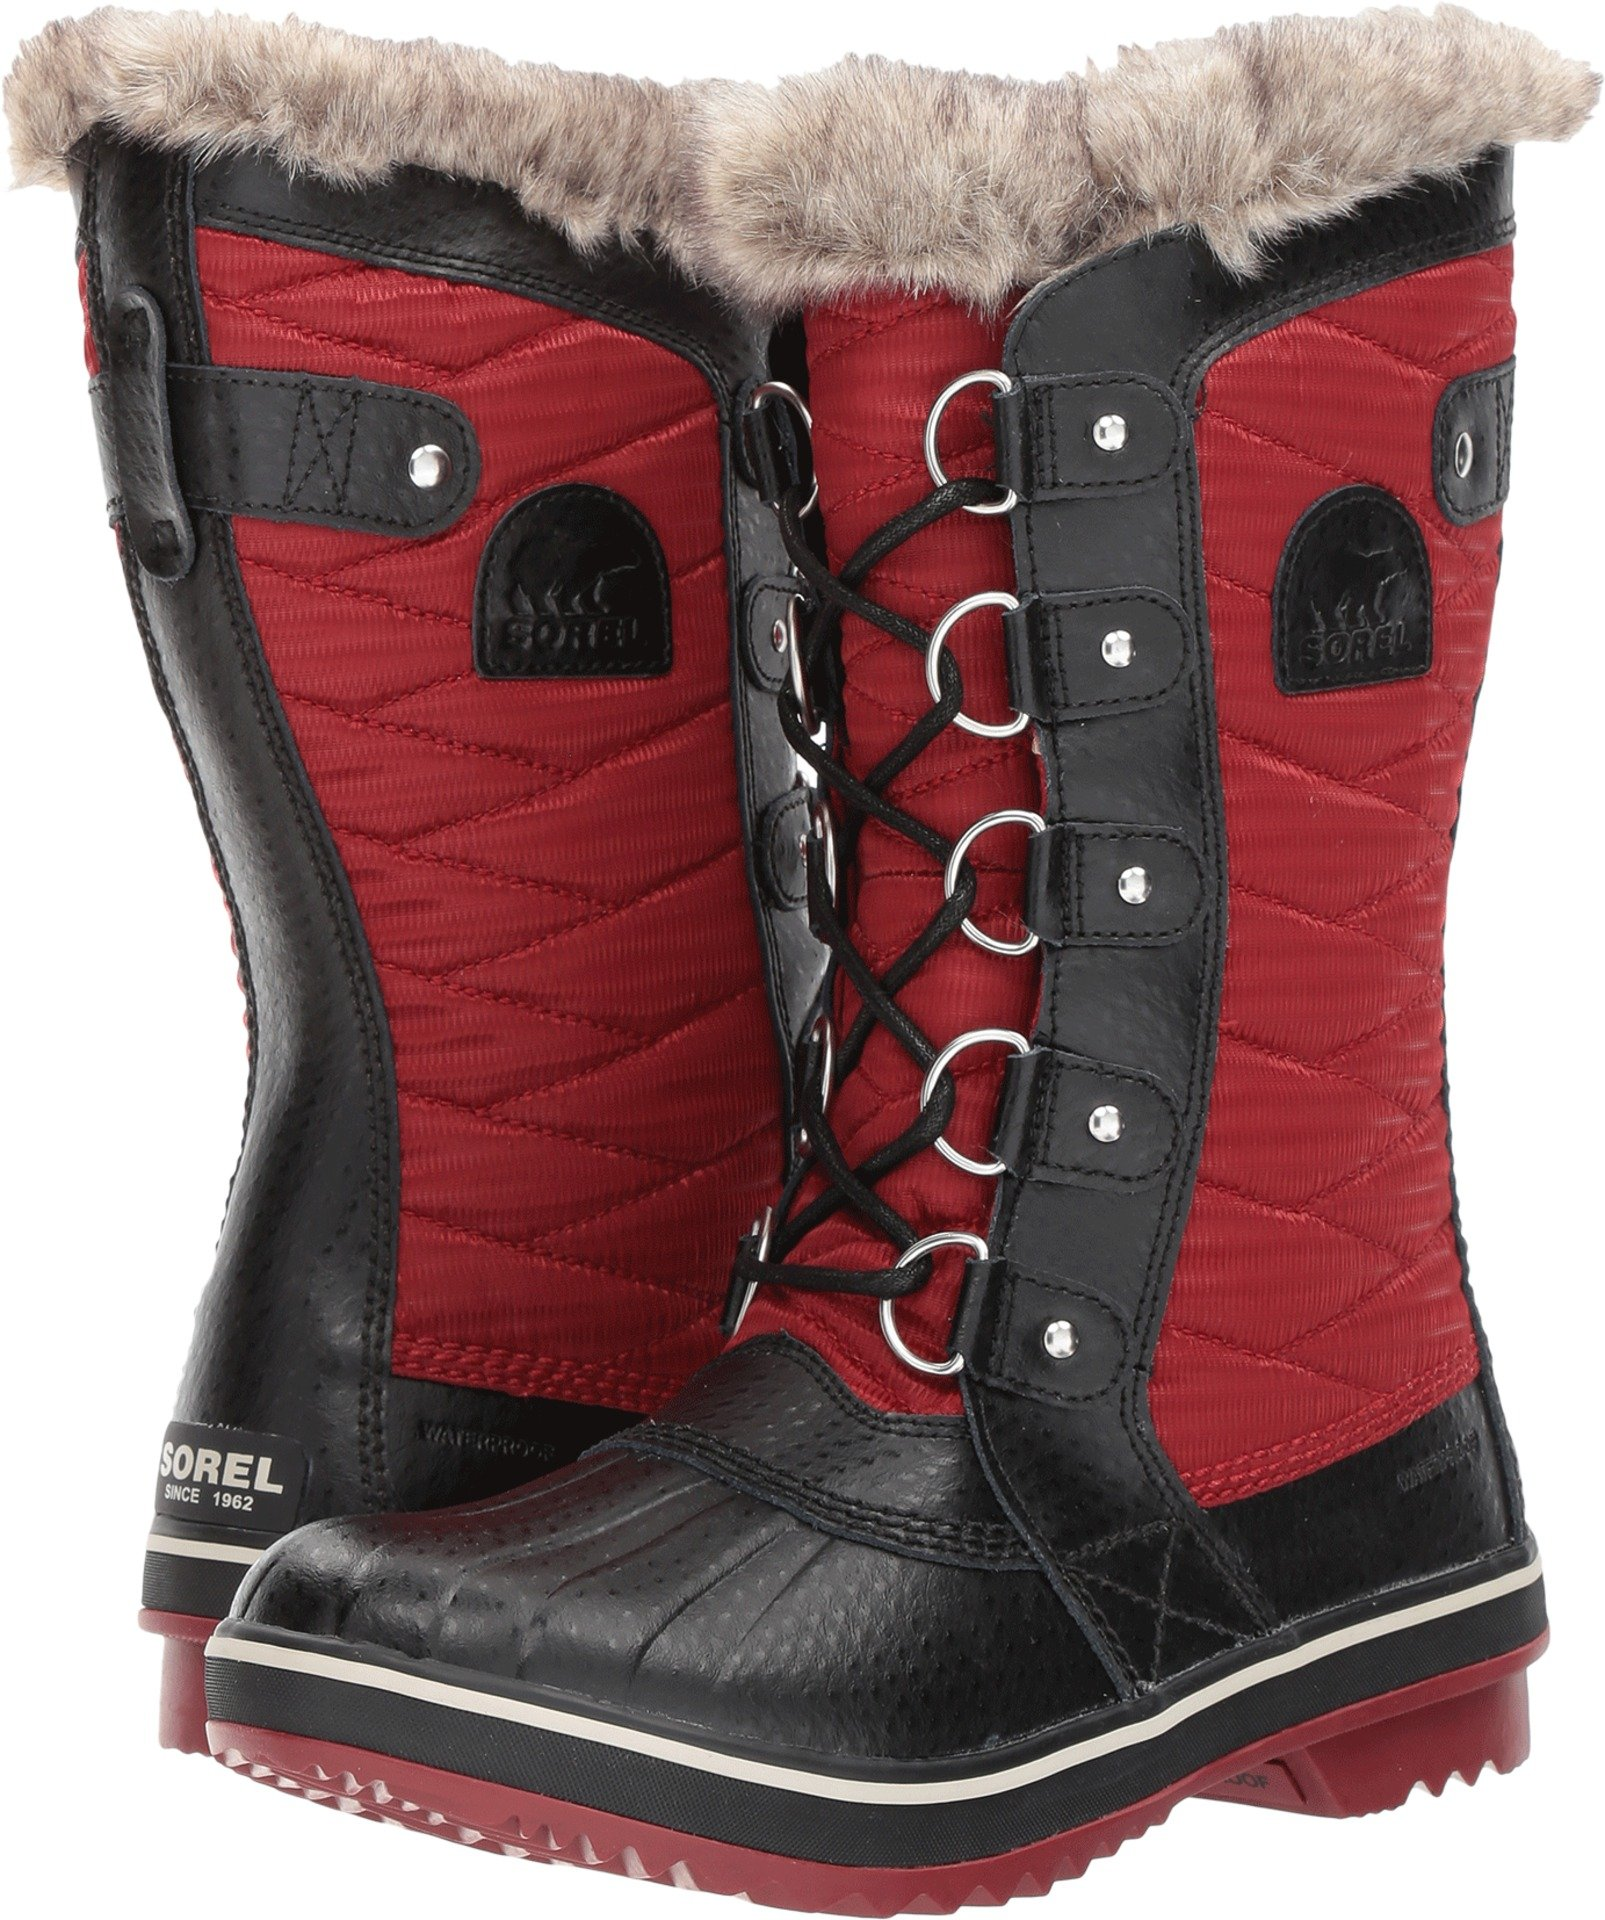 Sorel Tofino II Boot - Red Element/Black - Womens - 9.5 by SOREL